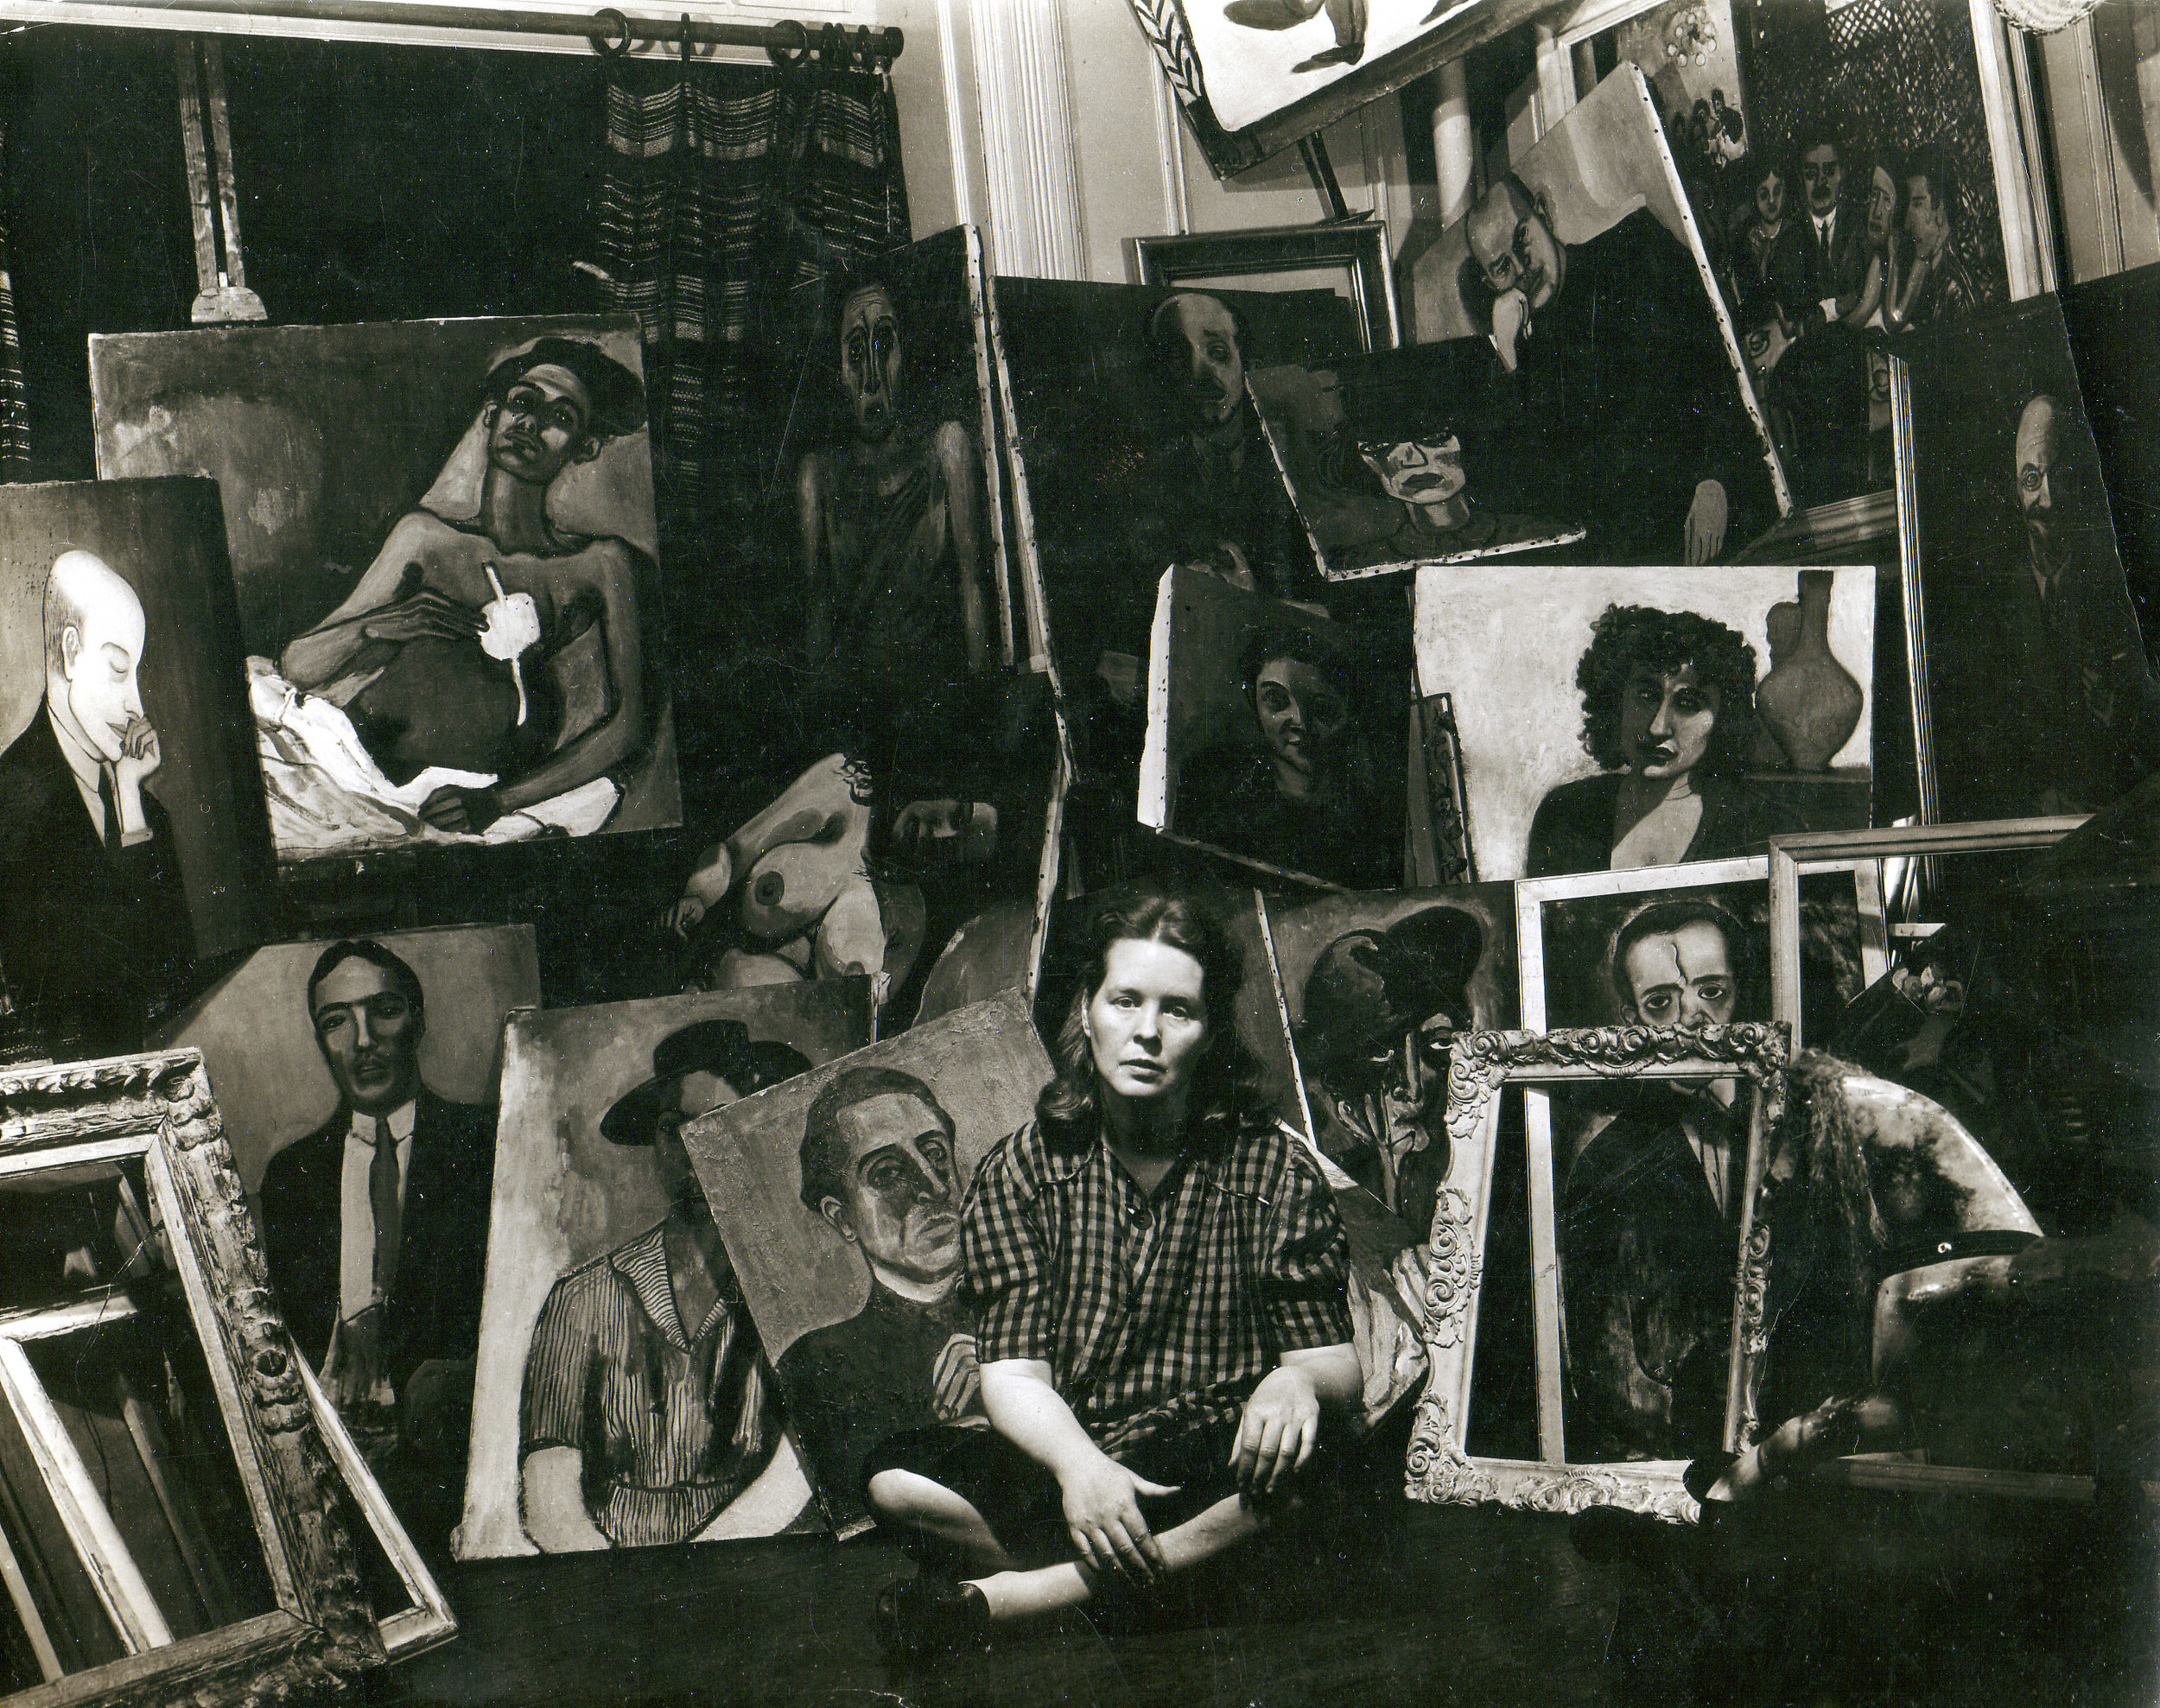 Alice Neel with paintings, 1940, Foto: Sam Brody, Estate of Alice Neel